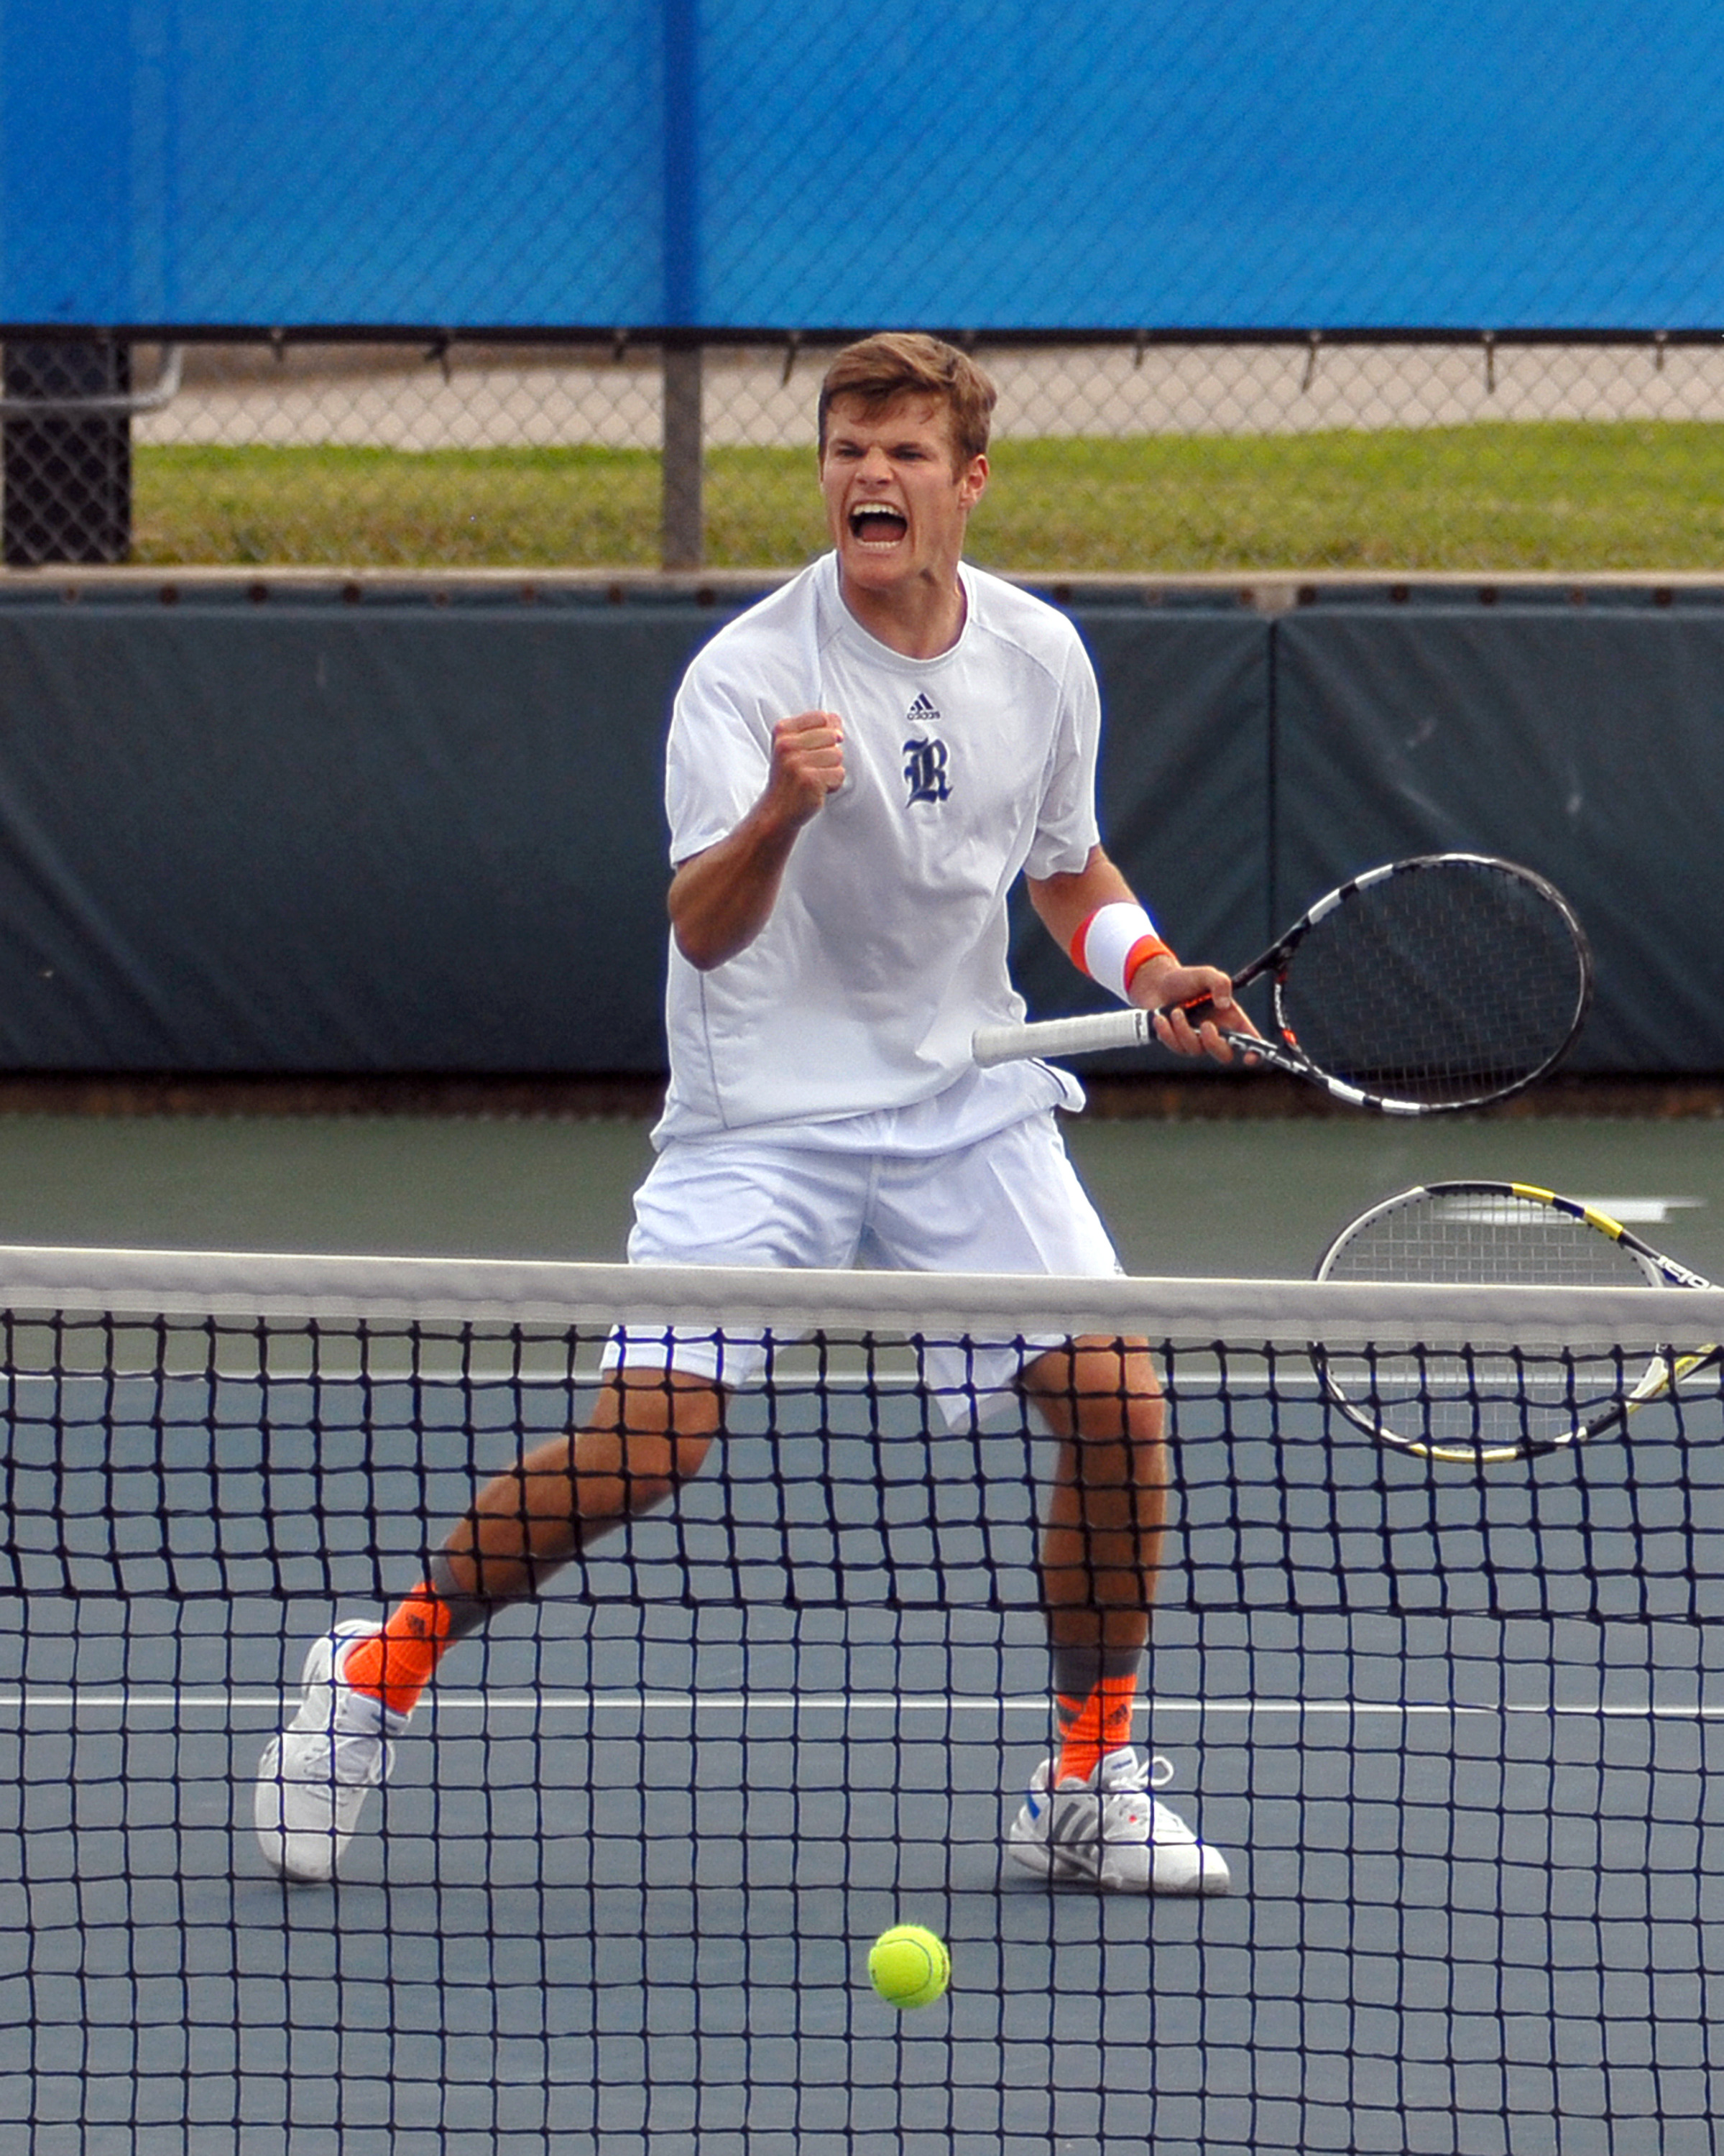 Tommy  Bennett rallied to clinch the match for Rice